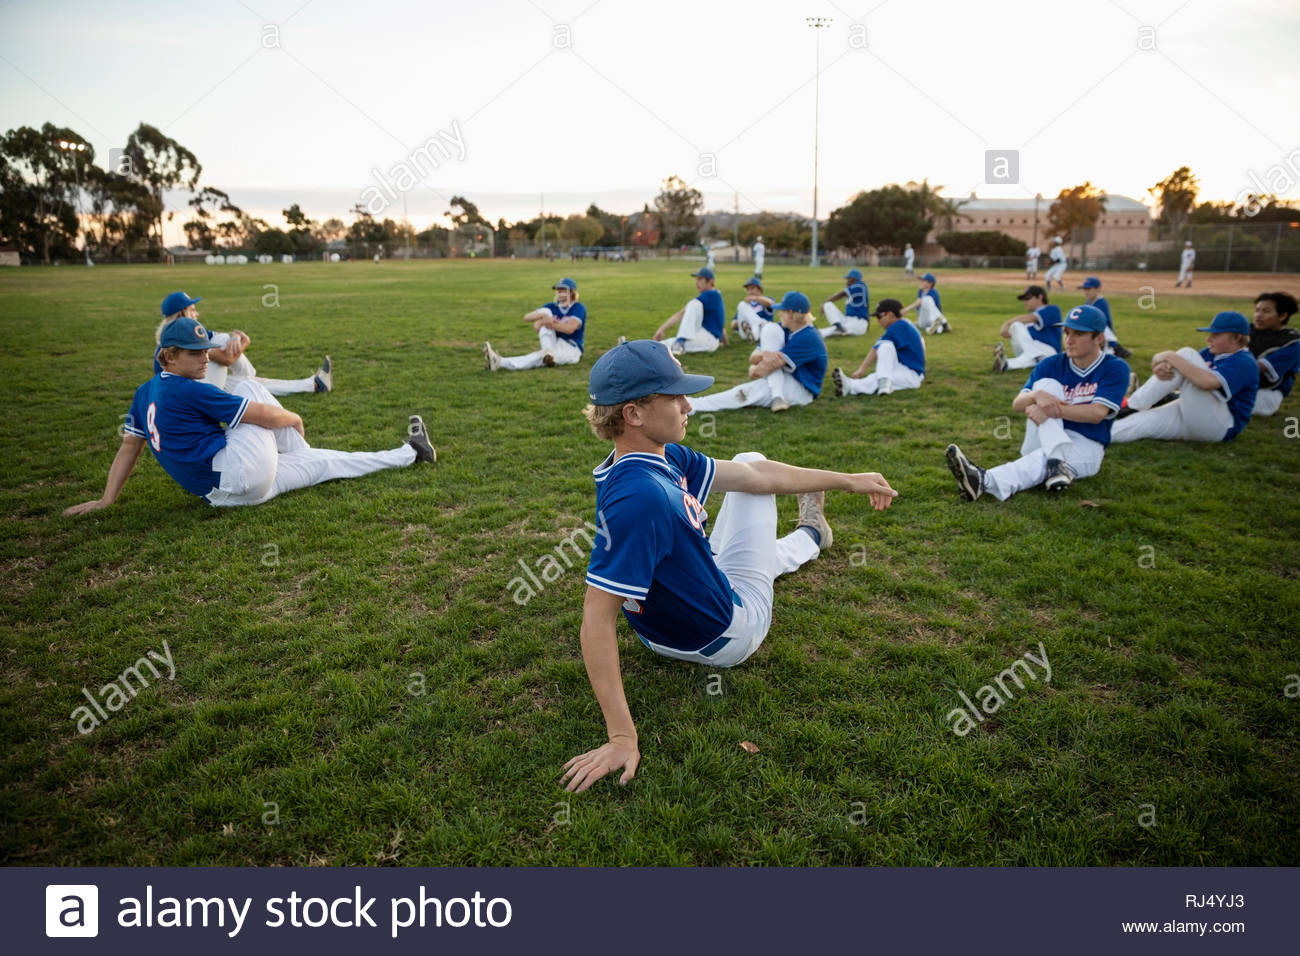 Baseball players stretching before game in grass - Stock Image